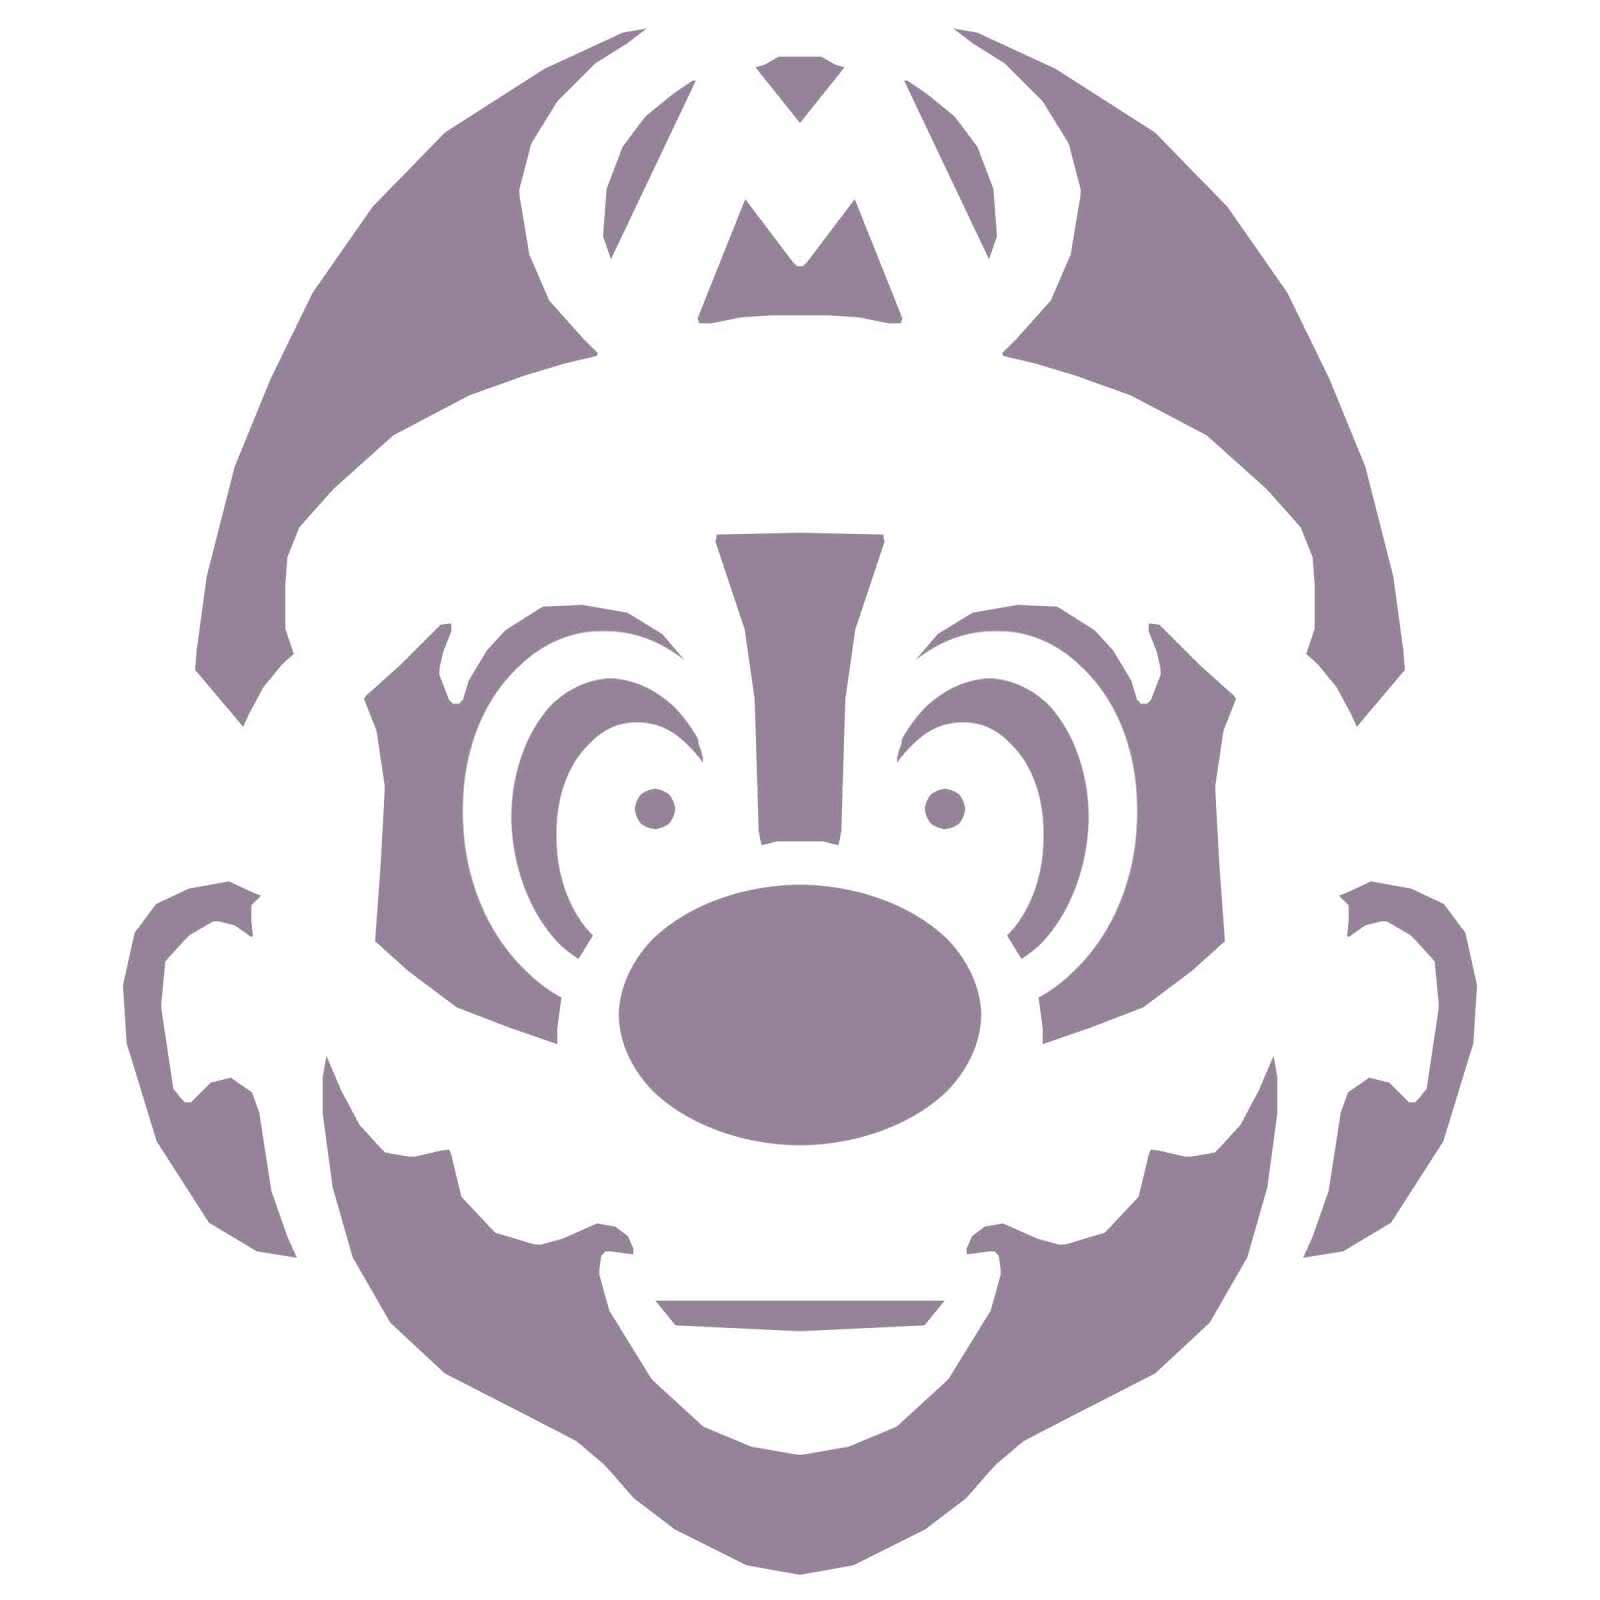 Mario Pumpkin - Spookify your pumpkin with a Mario pumpkin stencil!